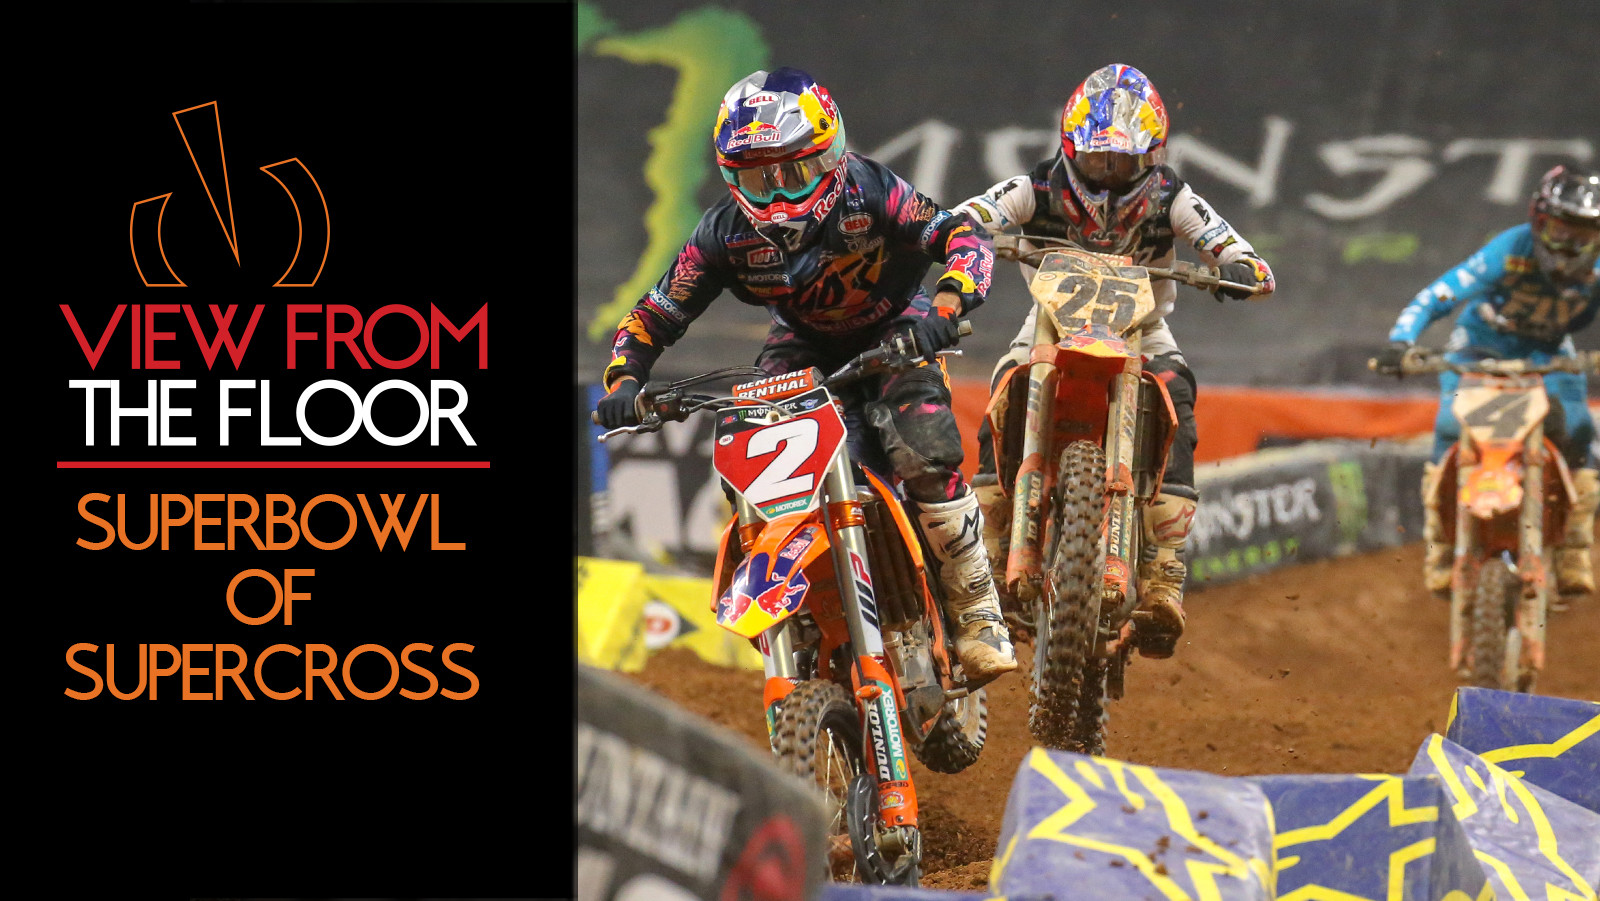 View From The Floor: Superbowl of Supercross Motocross